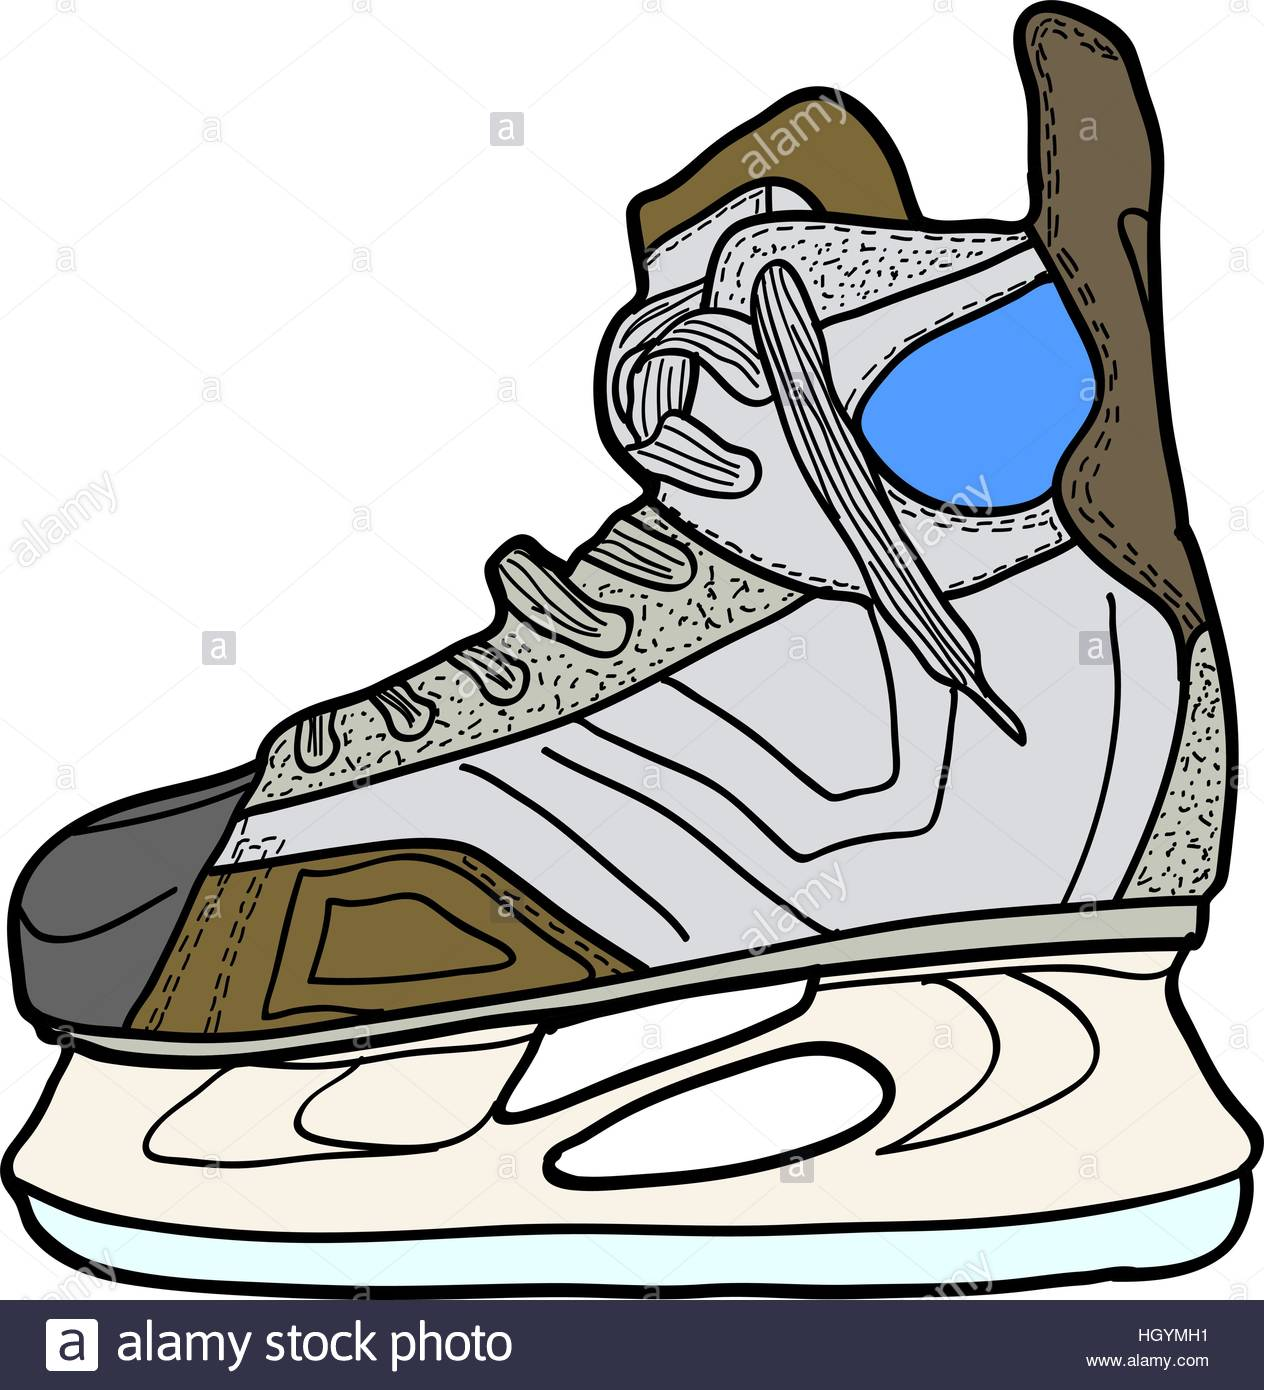 1264x1390 Sketch Of Hockey Skates. Skates To Play Hockey On Ice, Vector